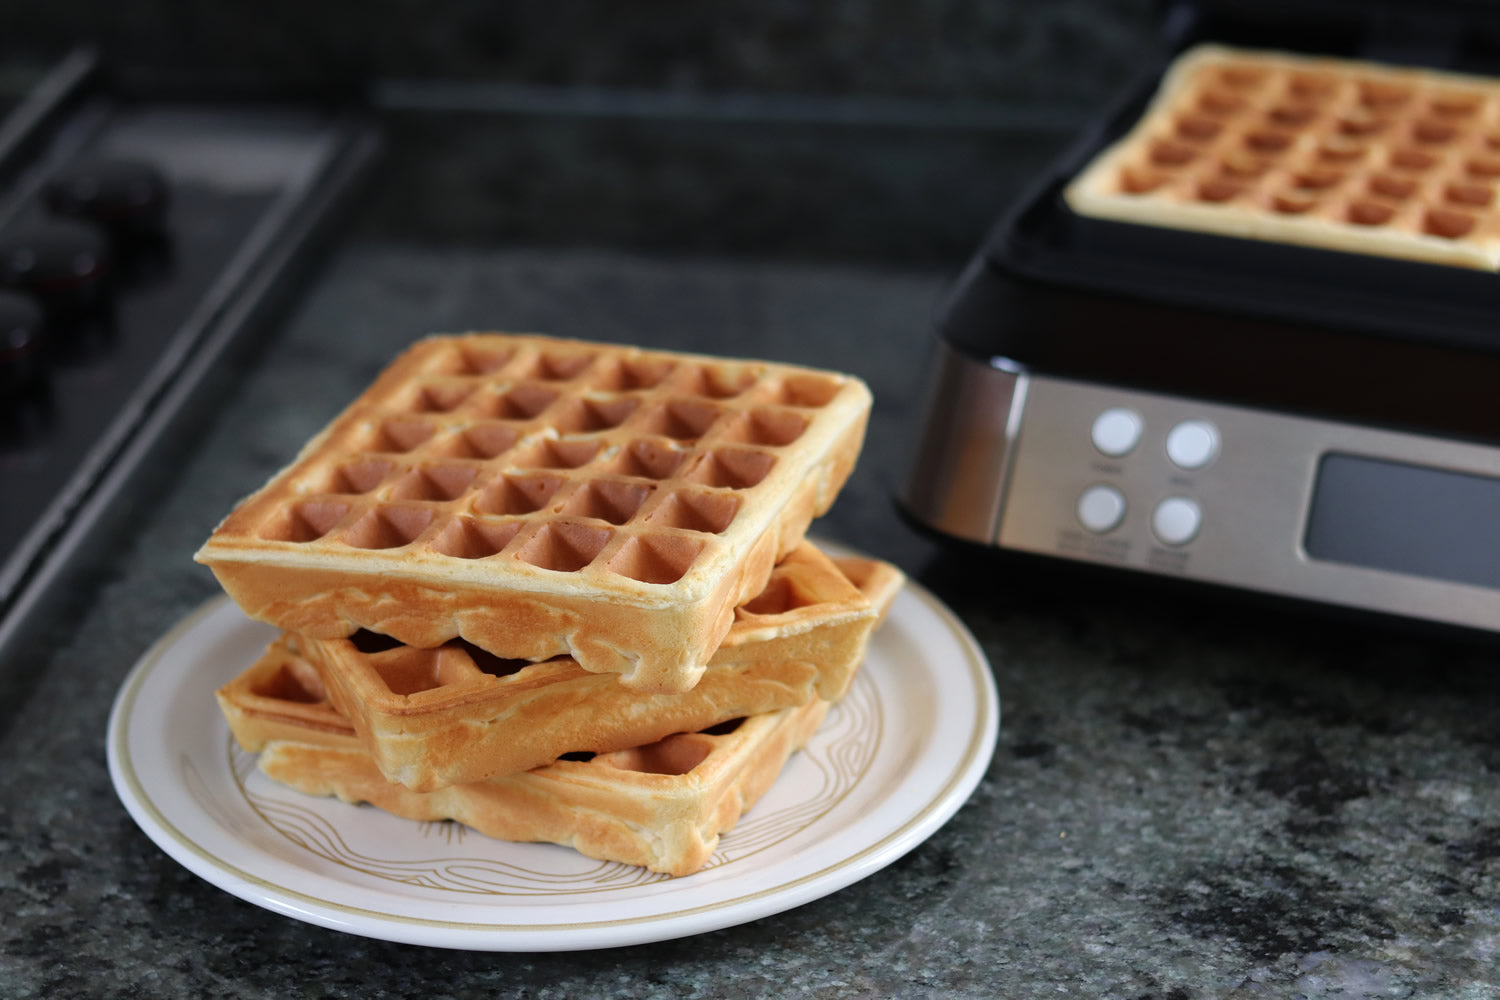 AICOOK   Waffle Maker 1600w, Smart Pro Belgian Waffle Iron with LCD Display, 2-Slice, 5 Different Programs, 7 Browning Levels, Recipe Included, Silver